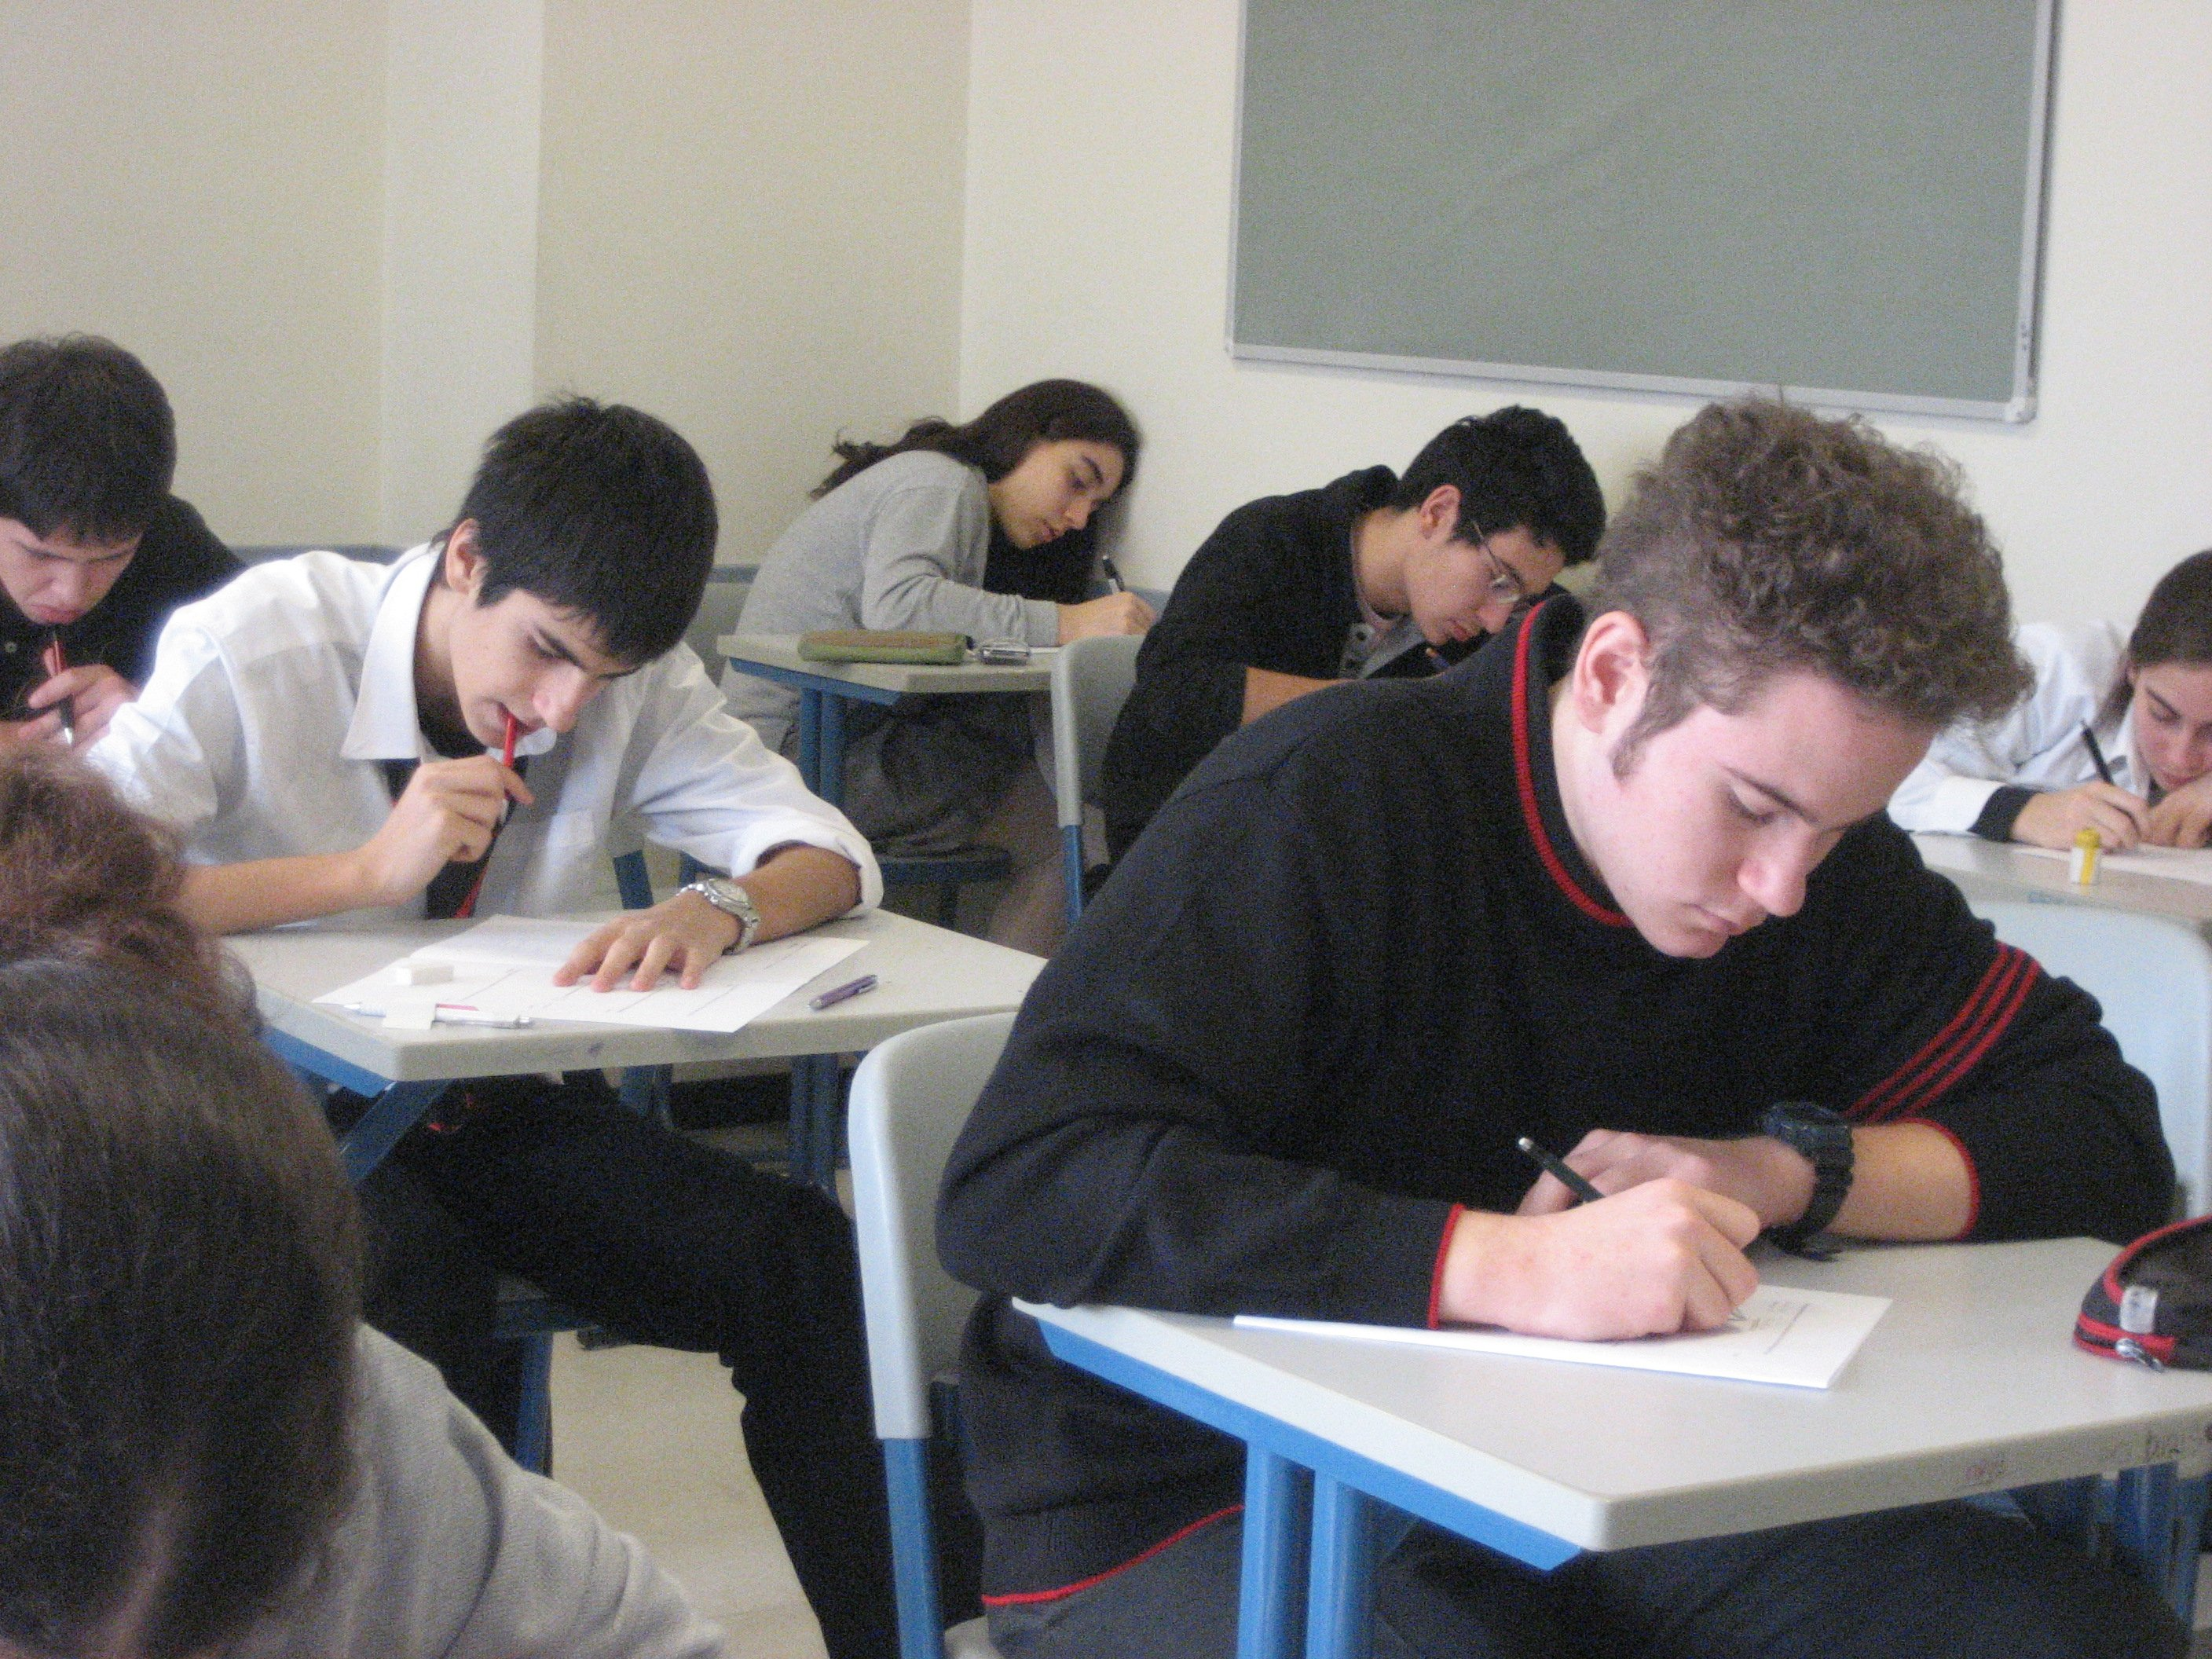 Estudiants examen Flickr   ccarlstead